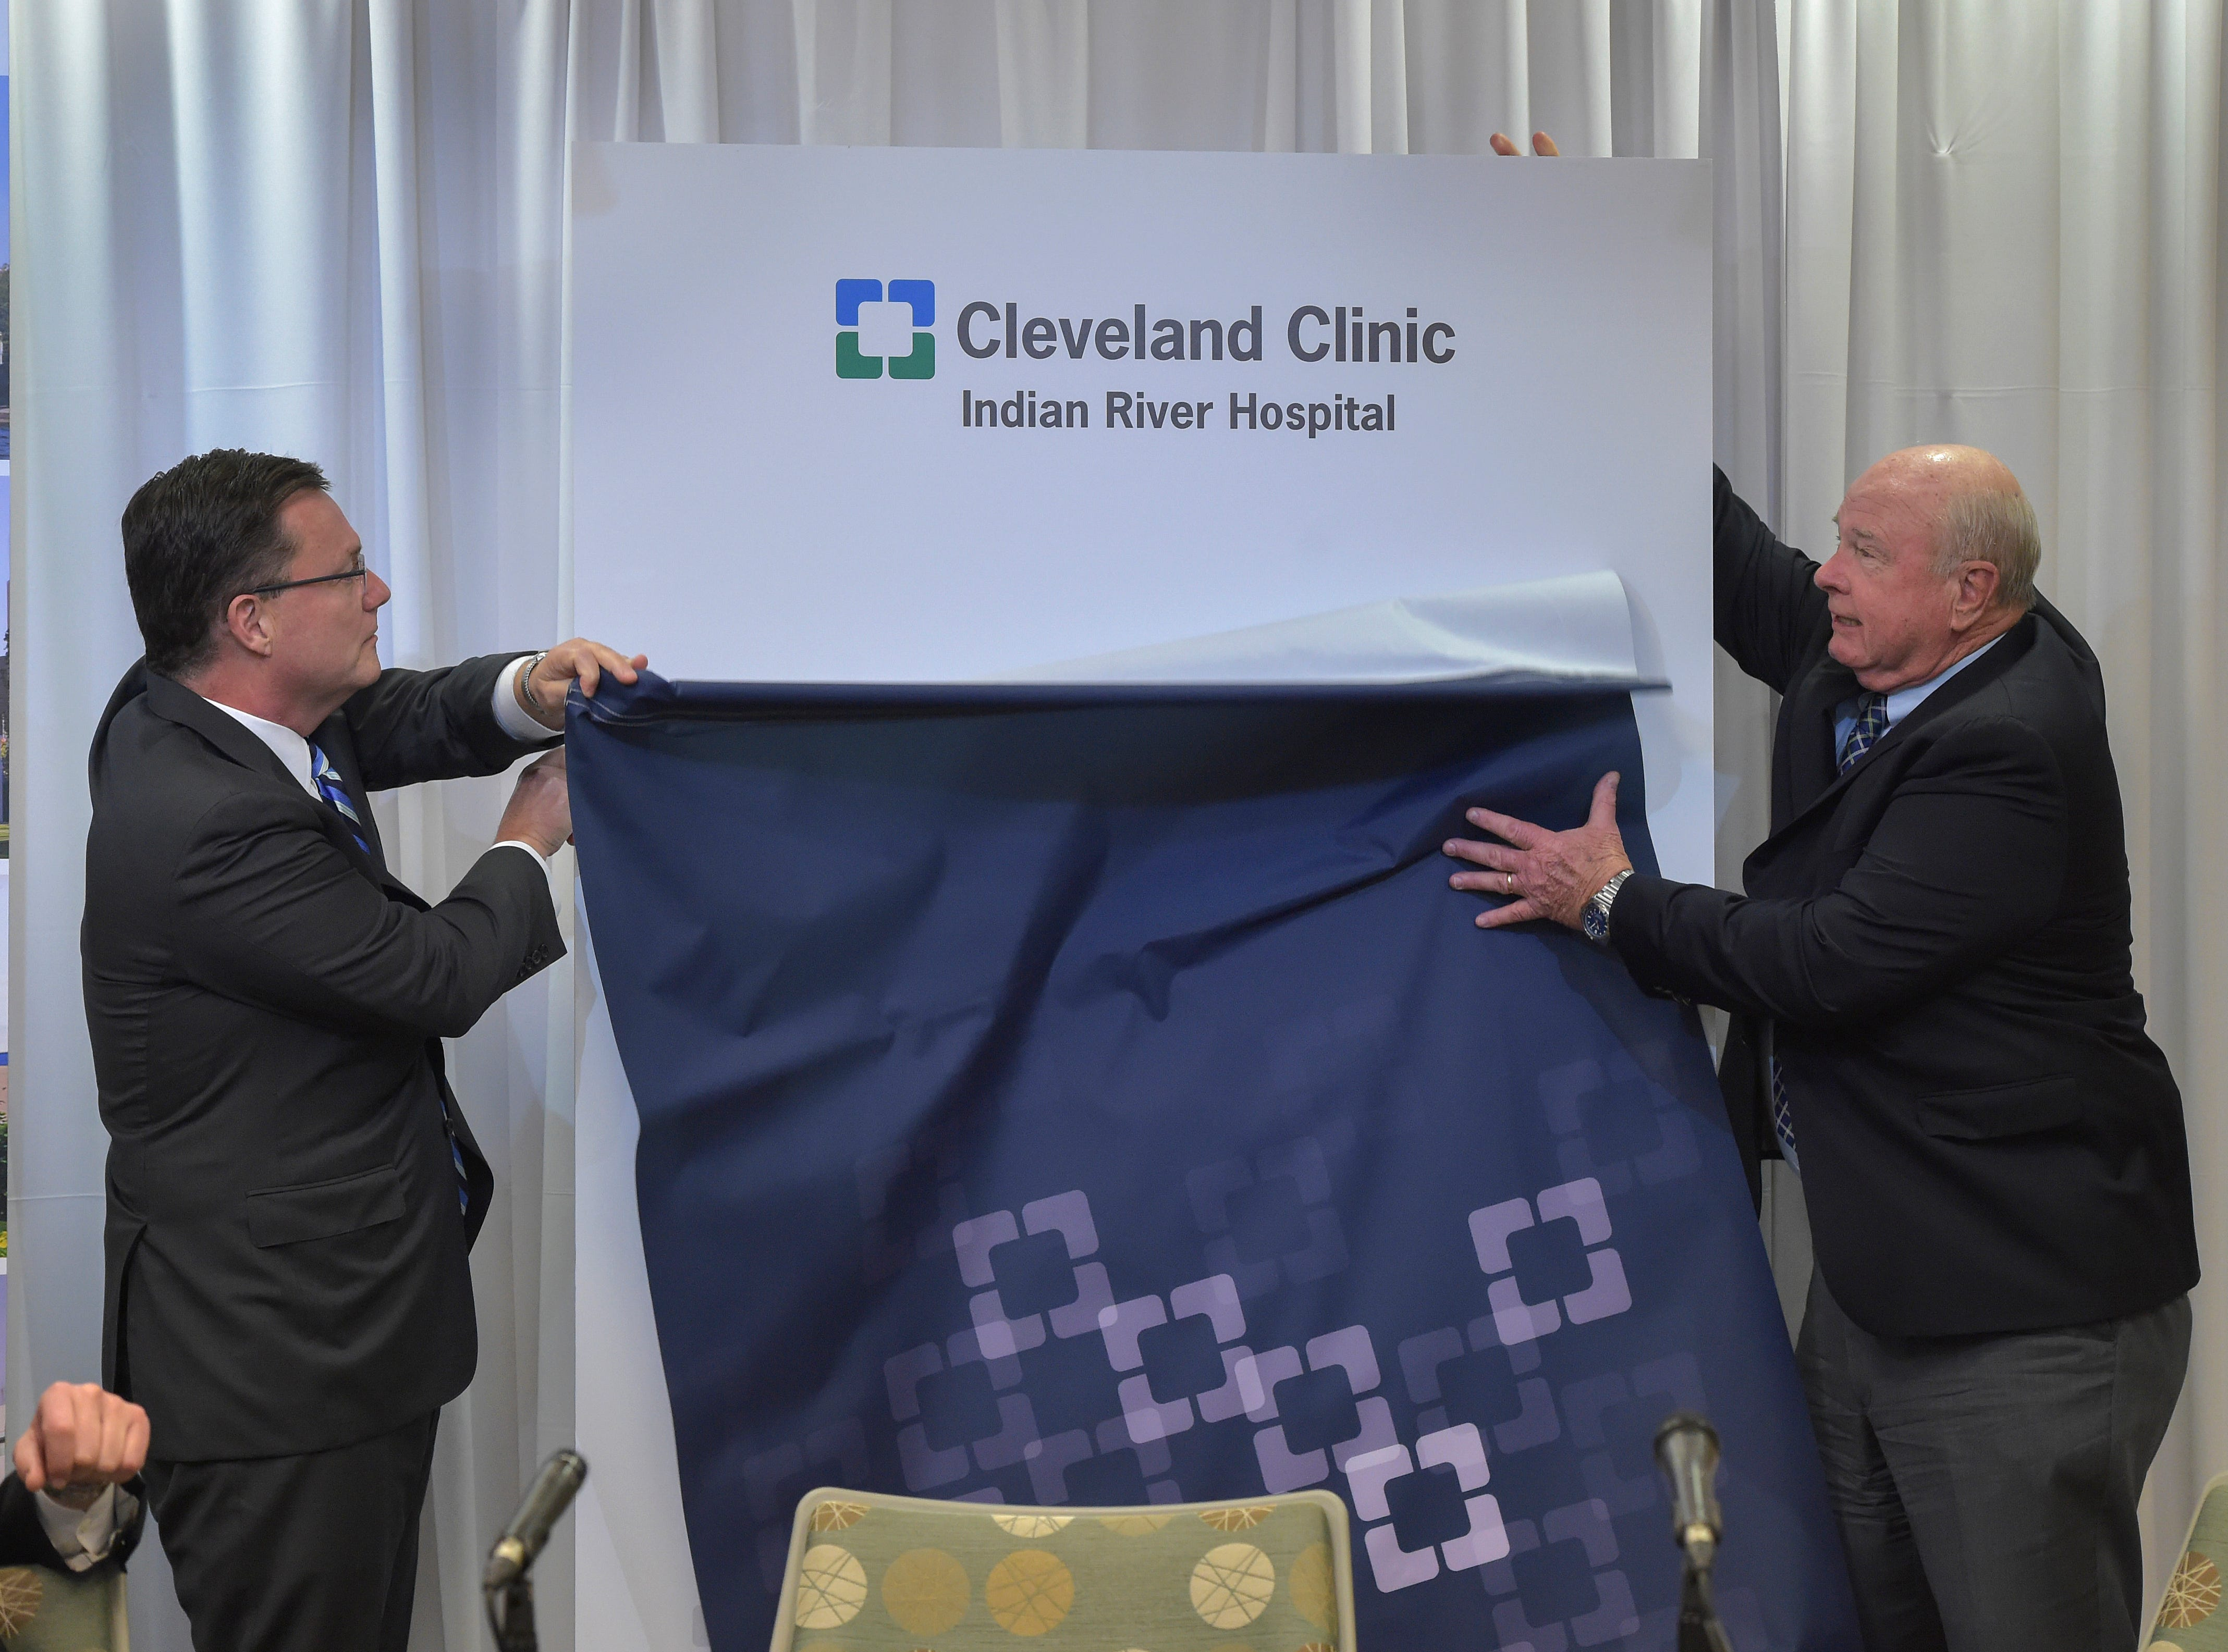 "Gregory Rosencrance, M.D. (left), President Cleveland Clinic Indian River Hospital, and Wayne Hockmeyer, Ph.D, Board Member, Cleveland Clinic Indian River Hospital, unveil their new name during a news conference at Cleveland Clinic Tradition Hospital in Port St. Lucie, Wednesday, Jan. 9, 2019, announcing the new names of Indian River Medical Center and Martin Health System. ""I think it's exciting, it's historic, frankly,"" Hockmeyer said.""It's a path we've been on for two years and now this is the culmination of a new start, part of the Cleveland Clinic."""